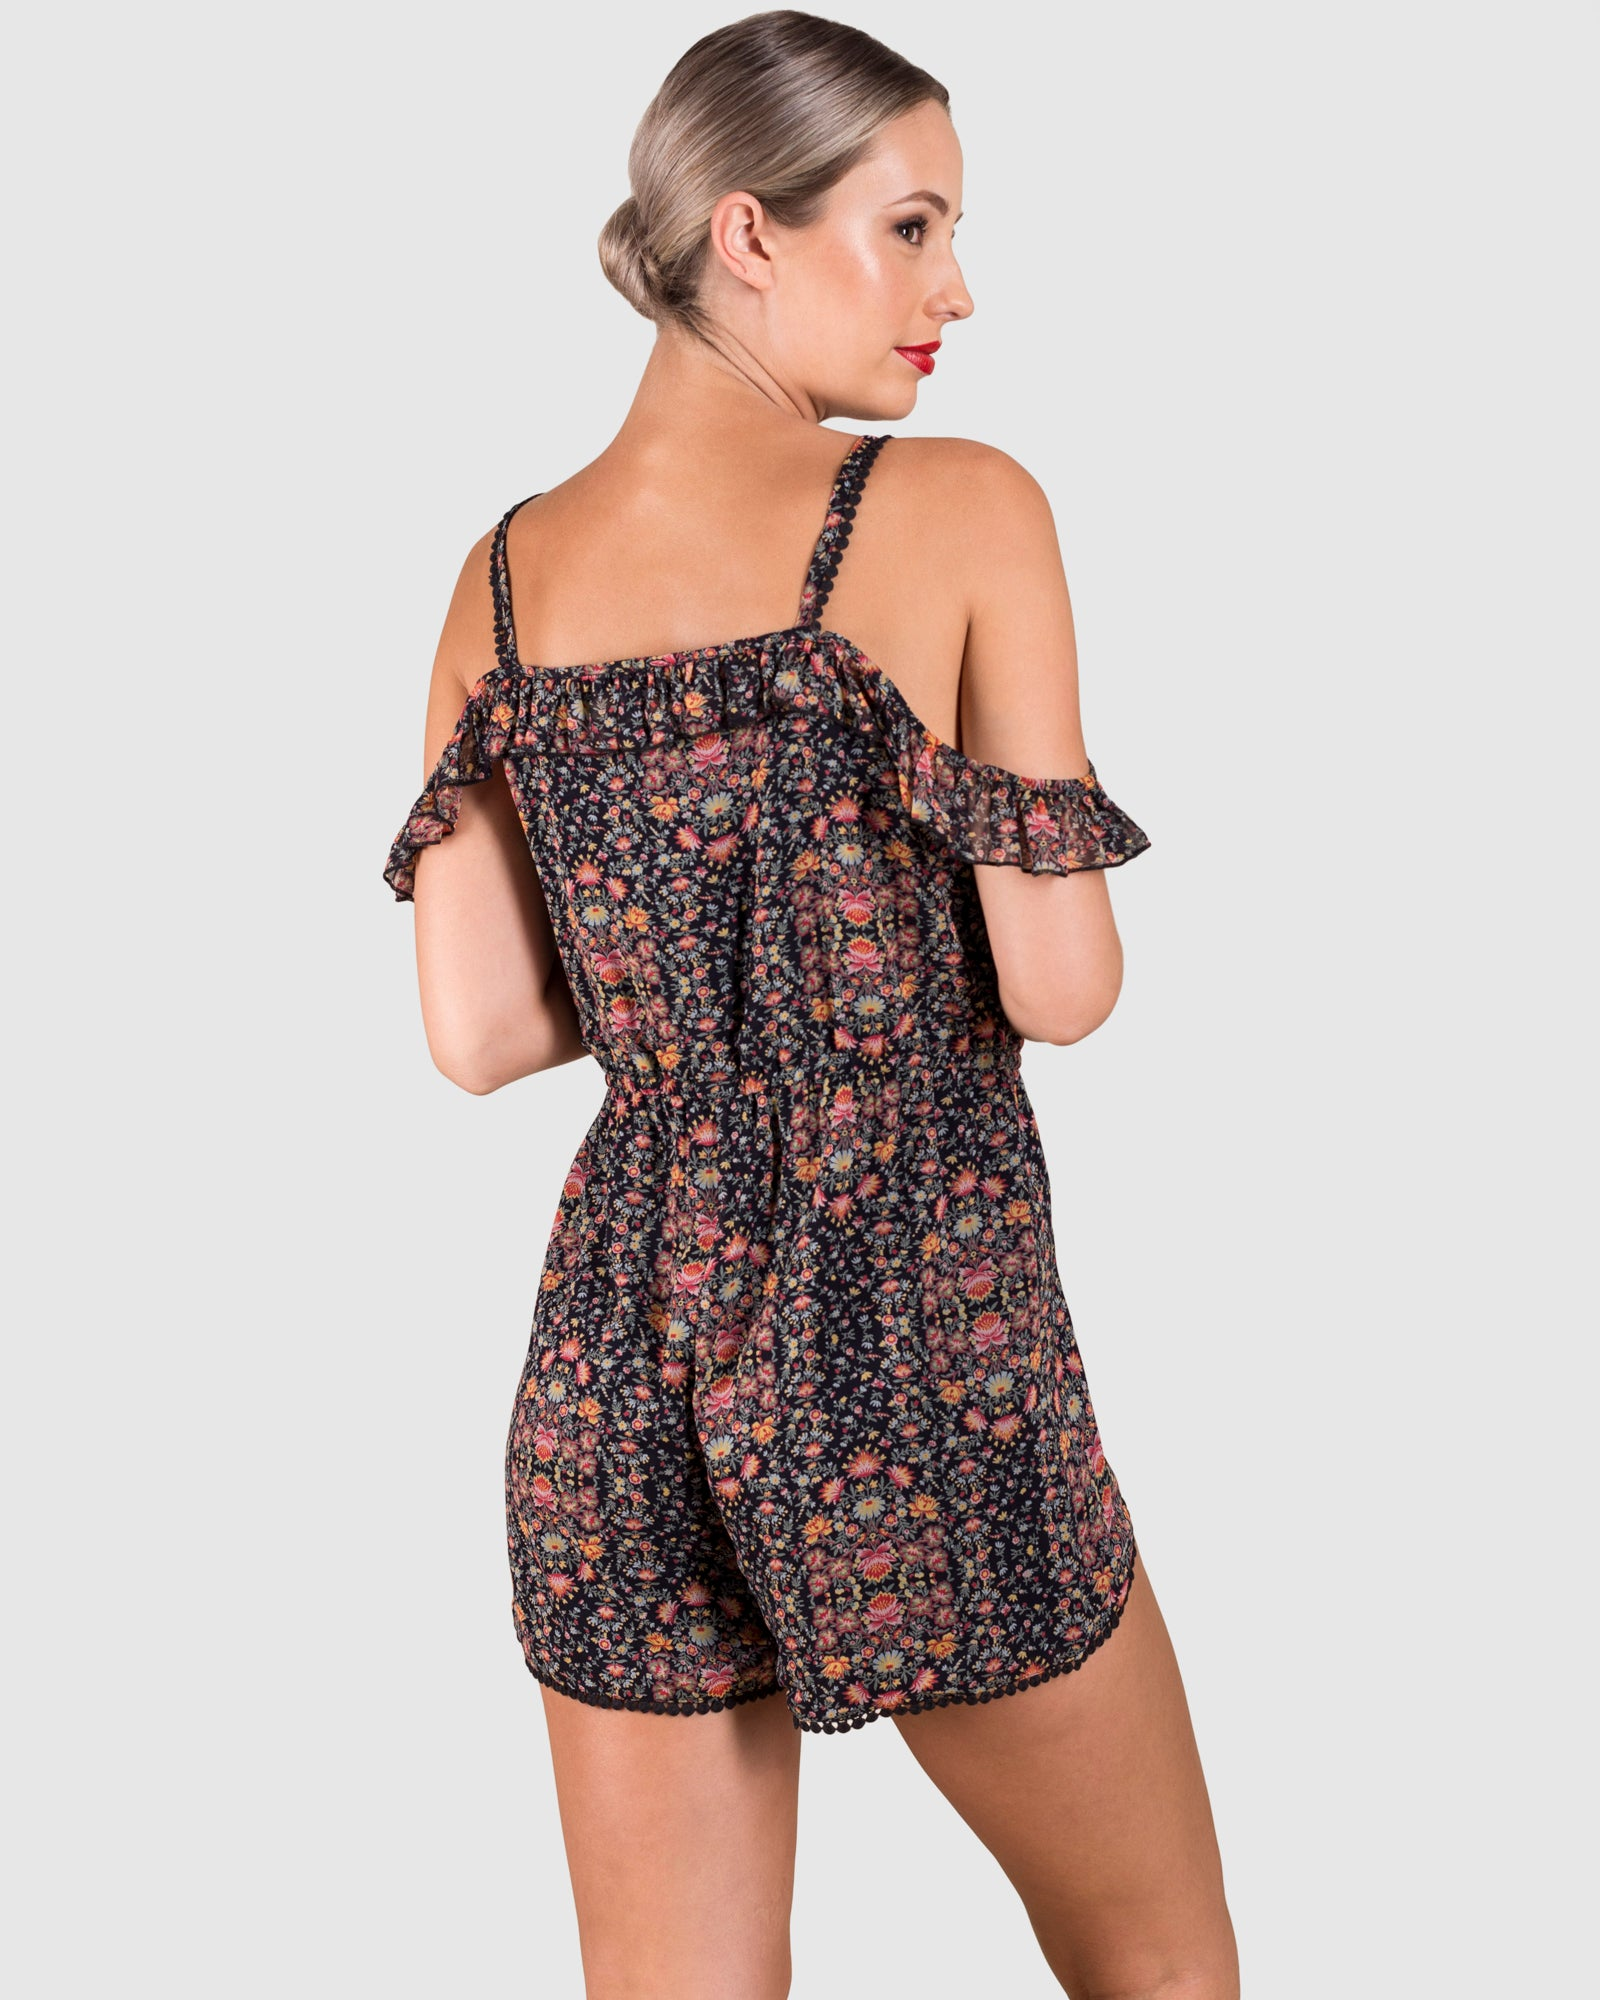 THE FLORAL PRINTED PLAYSUIT